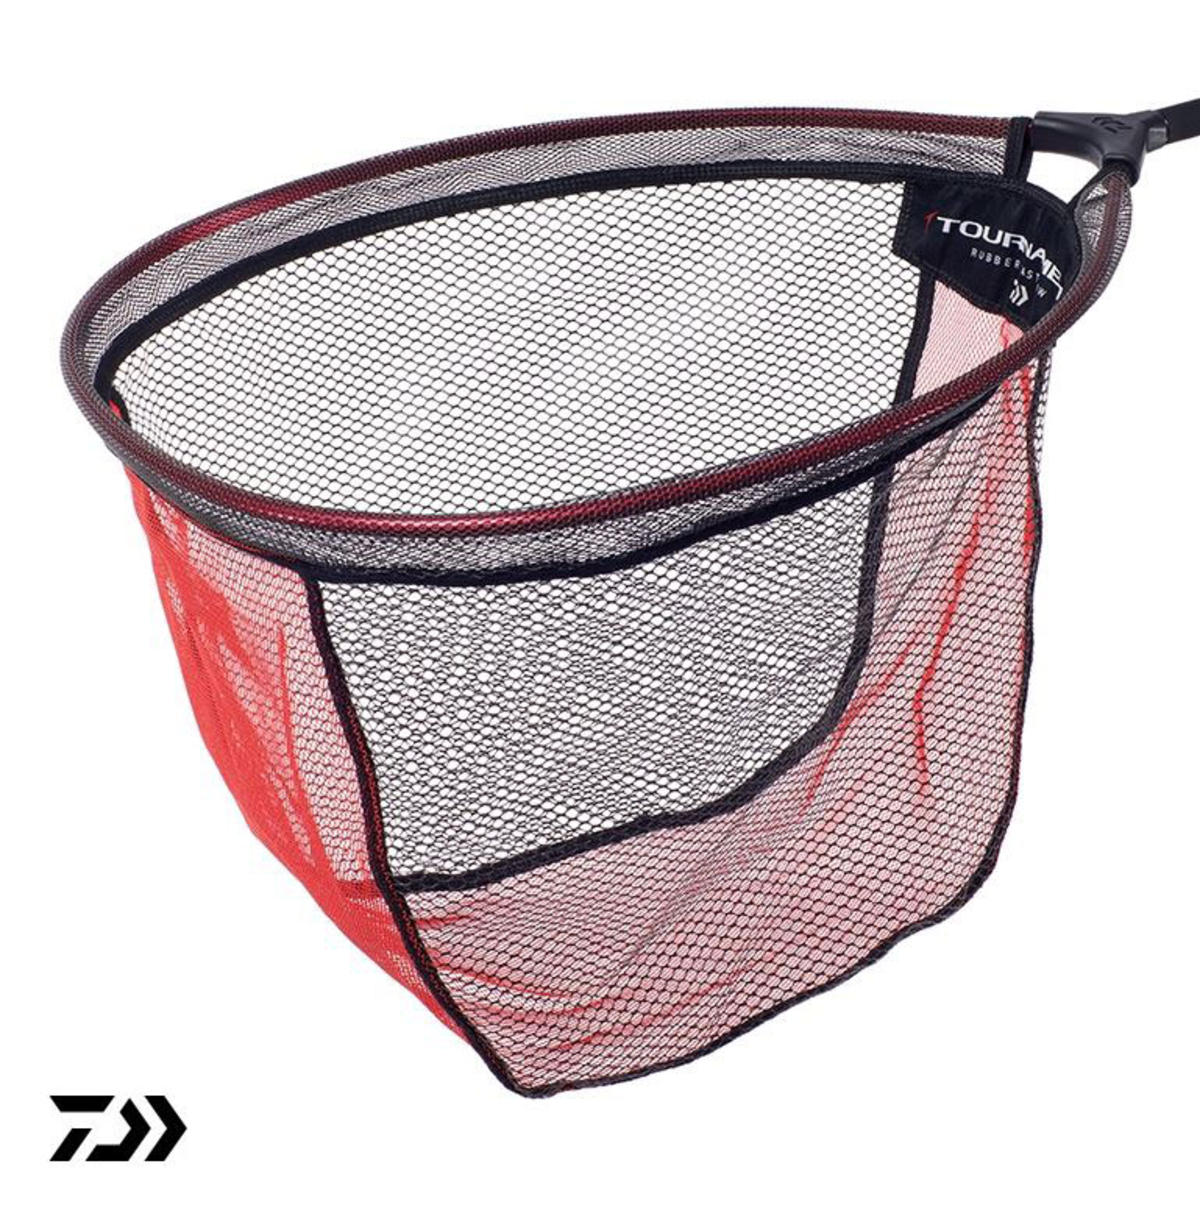 New Daiwa Tournament Rubber Fast Flow Landing Net Heads - All Sizes Available